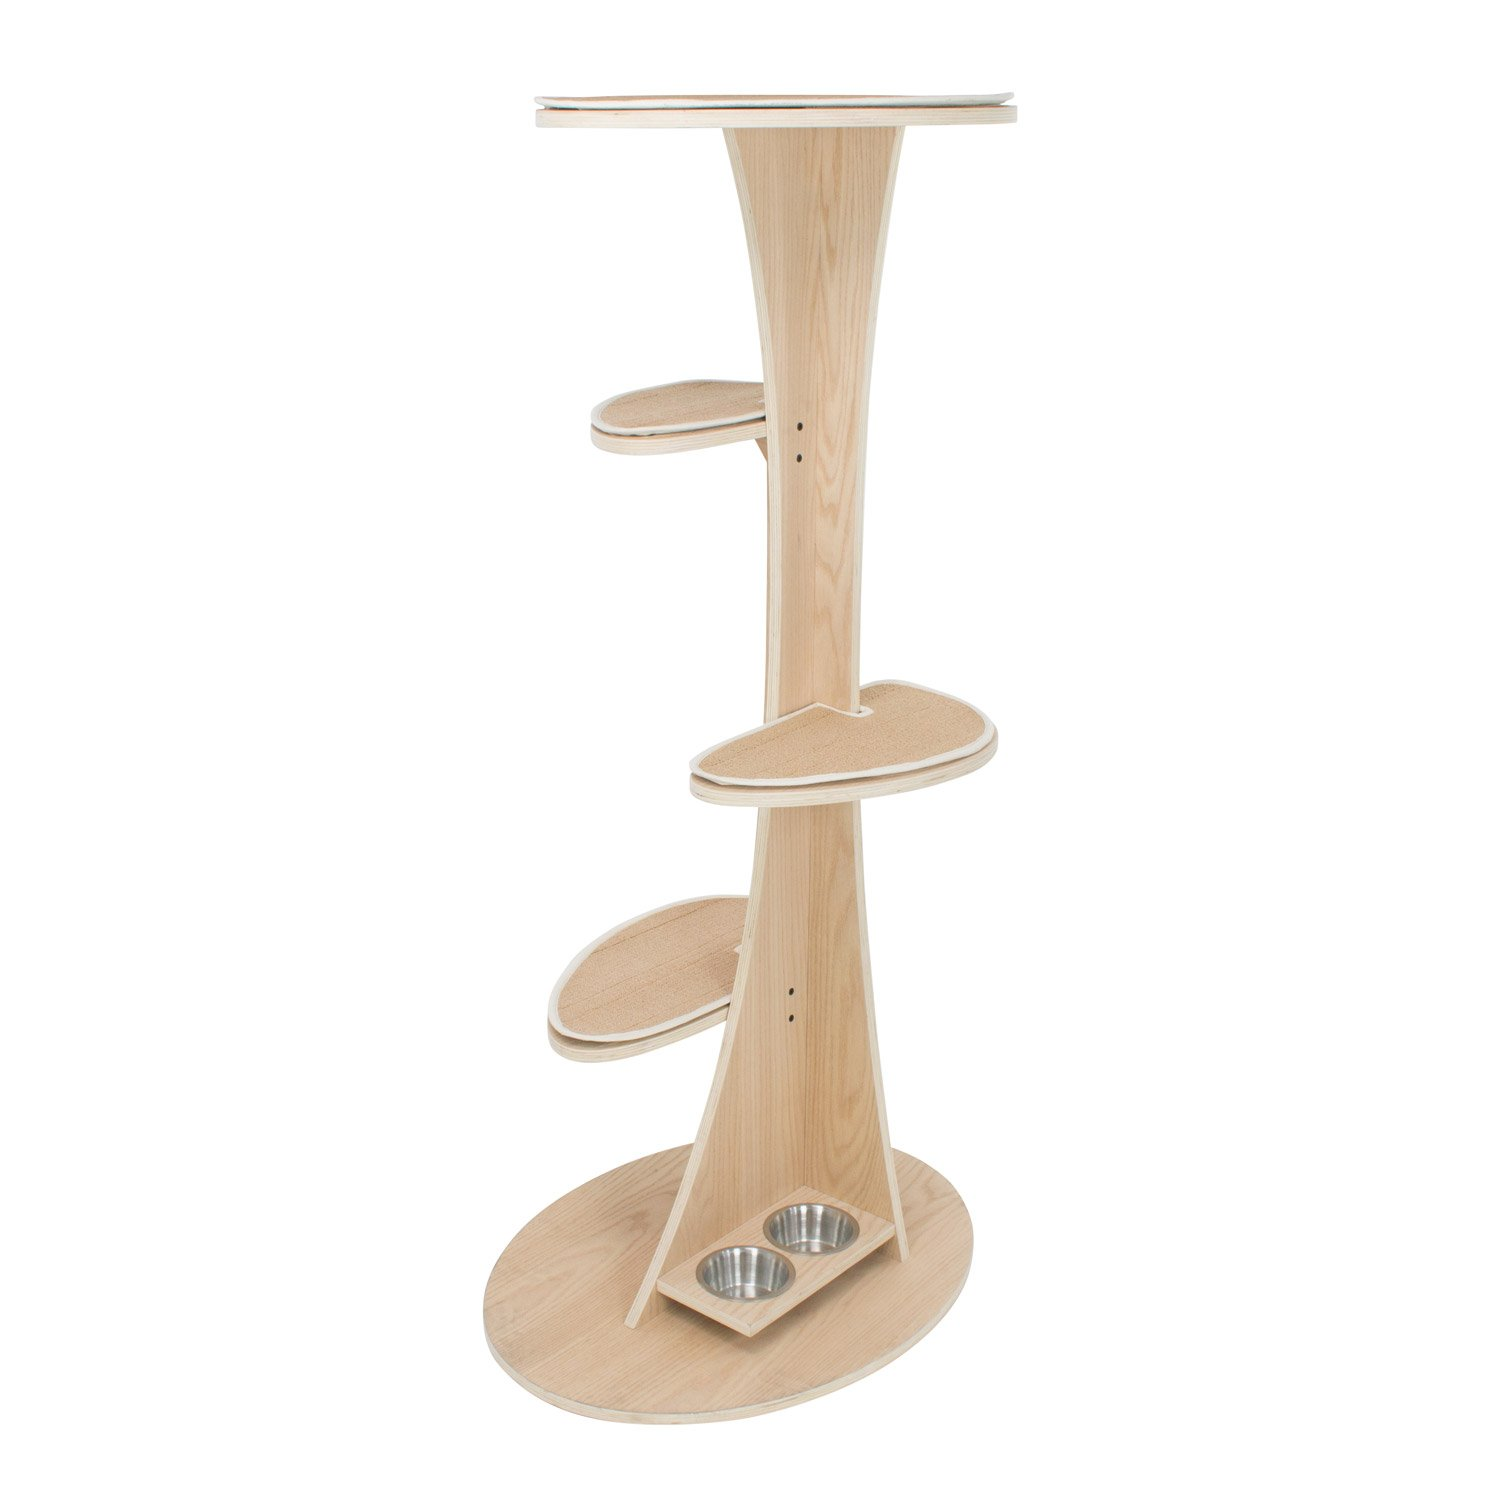 Frontpet Futuristic Wooden Cat Tree With Natural Wood Finish & Built In 5in. Food Bowls: Cat Tower 60in High x 30in Base